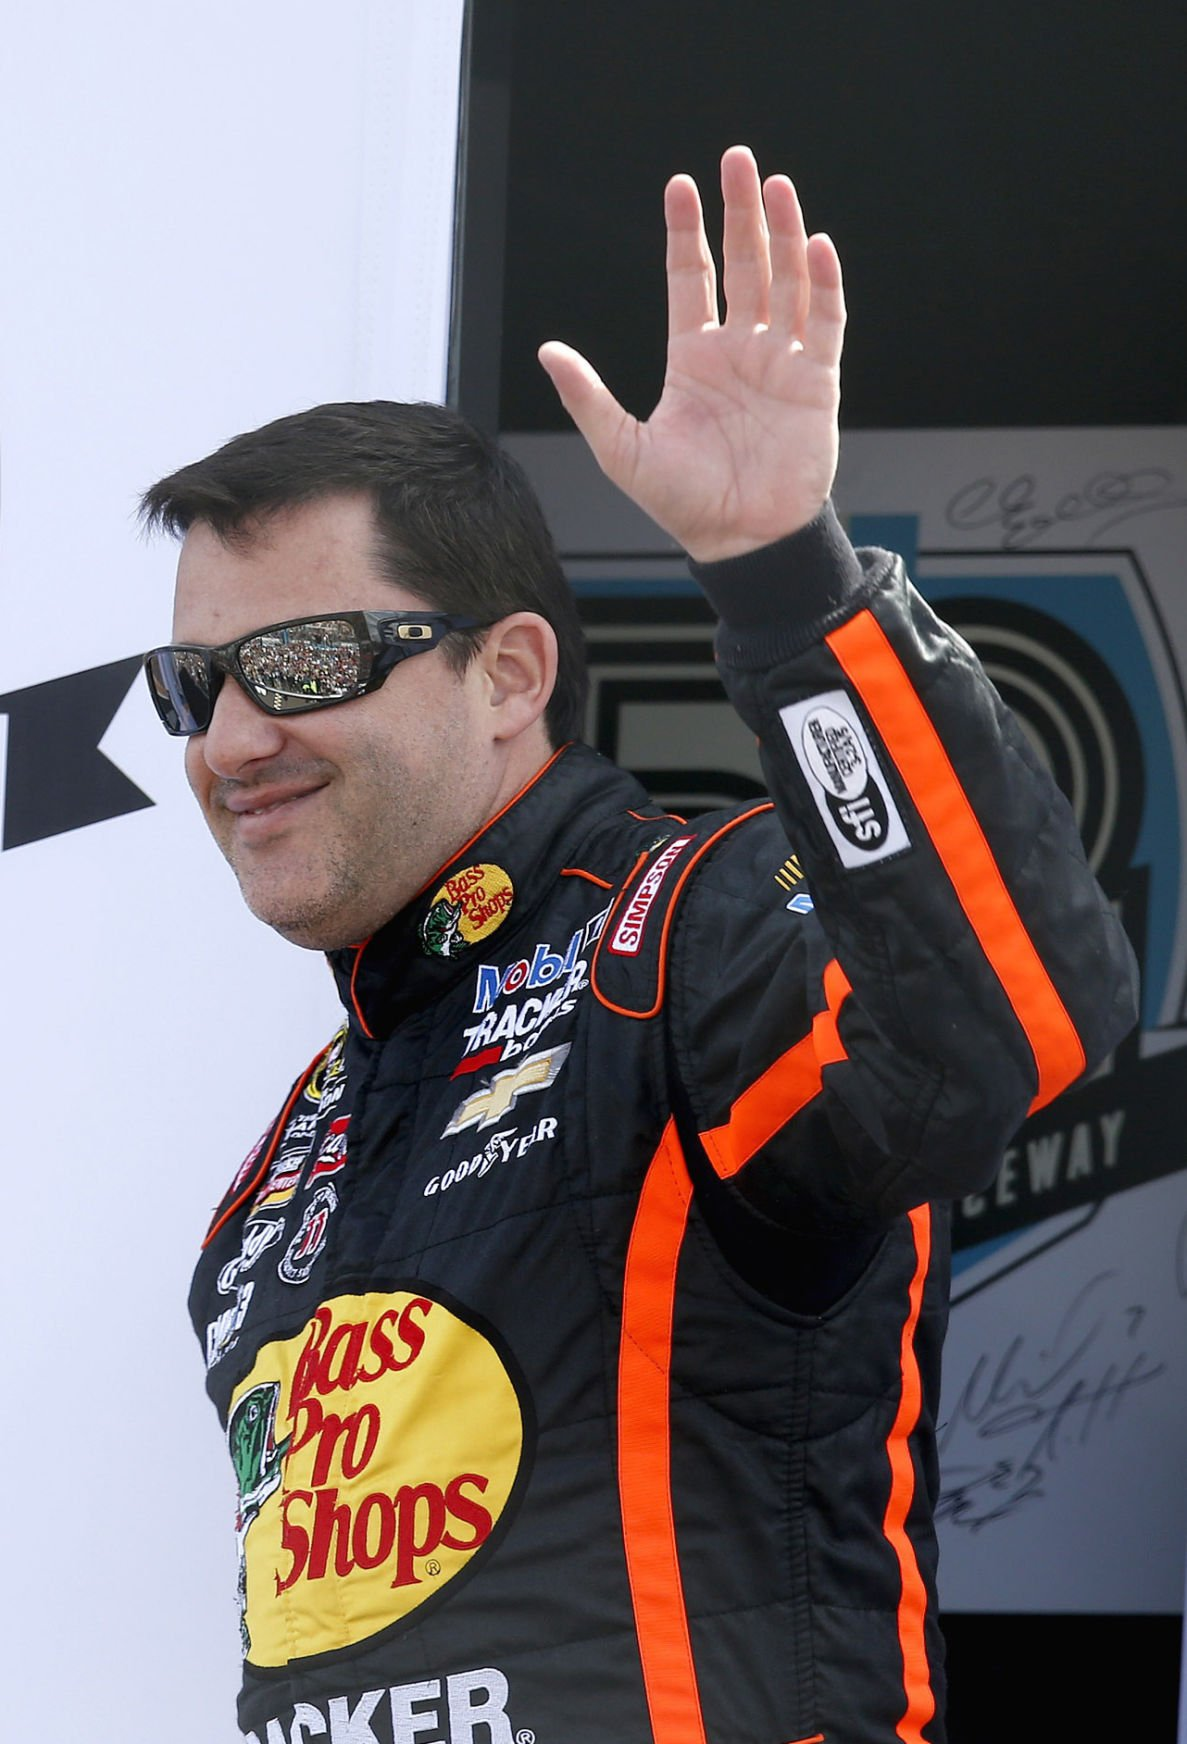 All Star Sprints >> Yentes: Tony Stewart slated for June 9 sprints at Lincoln | Bruce Yentes | pantagraph.com